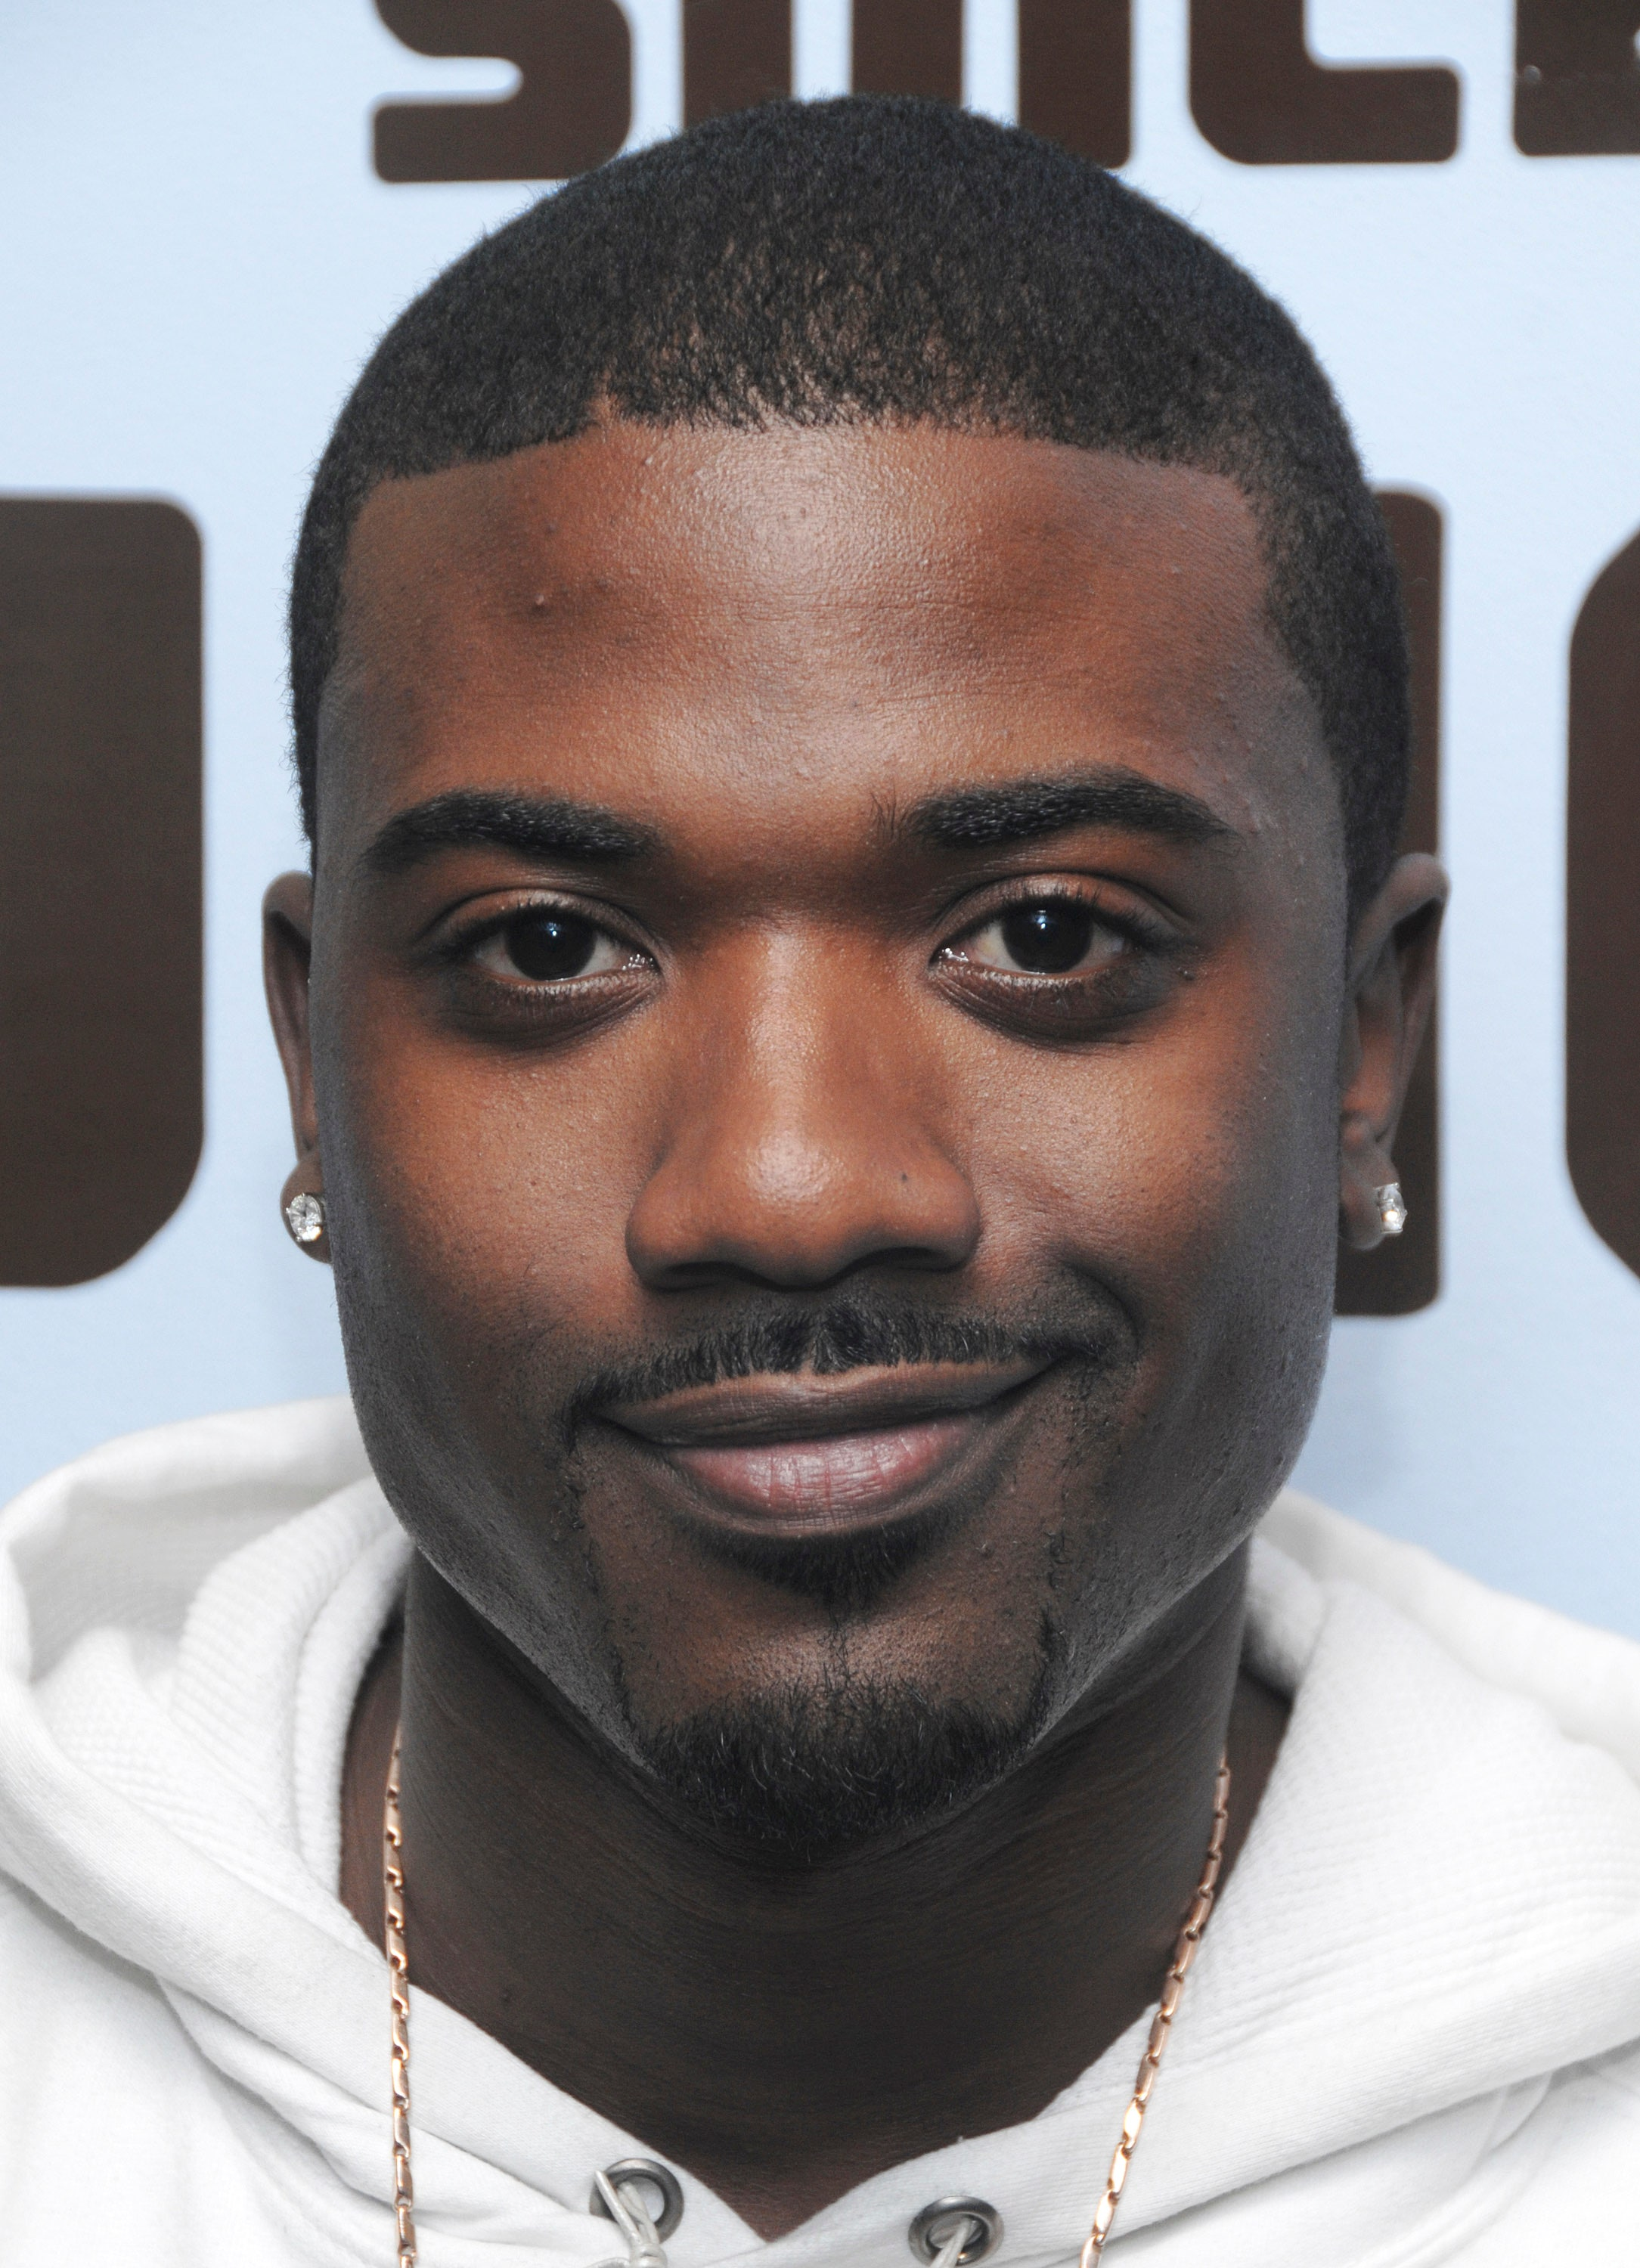 ray j curtains closedray j вики, ray j i hit it first, ray j kim kardashian tweet, ray j curtains closed, ray j - one wish, ray j kim kardashian song, ray j famous, ray j chris brown famous, ray j net worth, ray j curtains closed instrumental, ray j be with you, ray j tv show, ray j mp3, ray j 2016, ray j famous lyrics, ray j what i need, ray j one wish acapella, ray j wiki, ray j curtains closed lyrics, ray j keep sweatin mp3